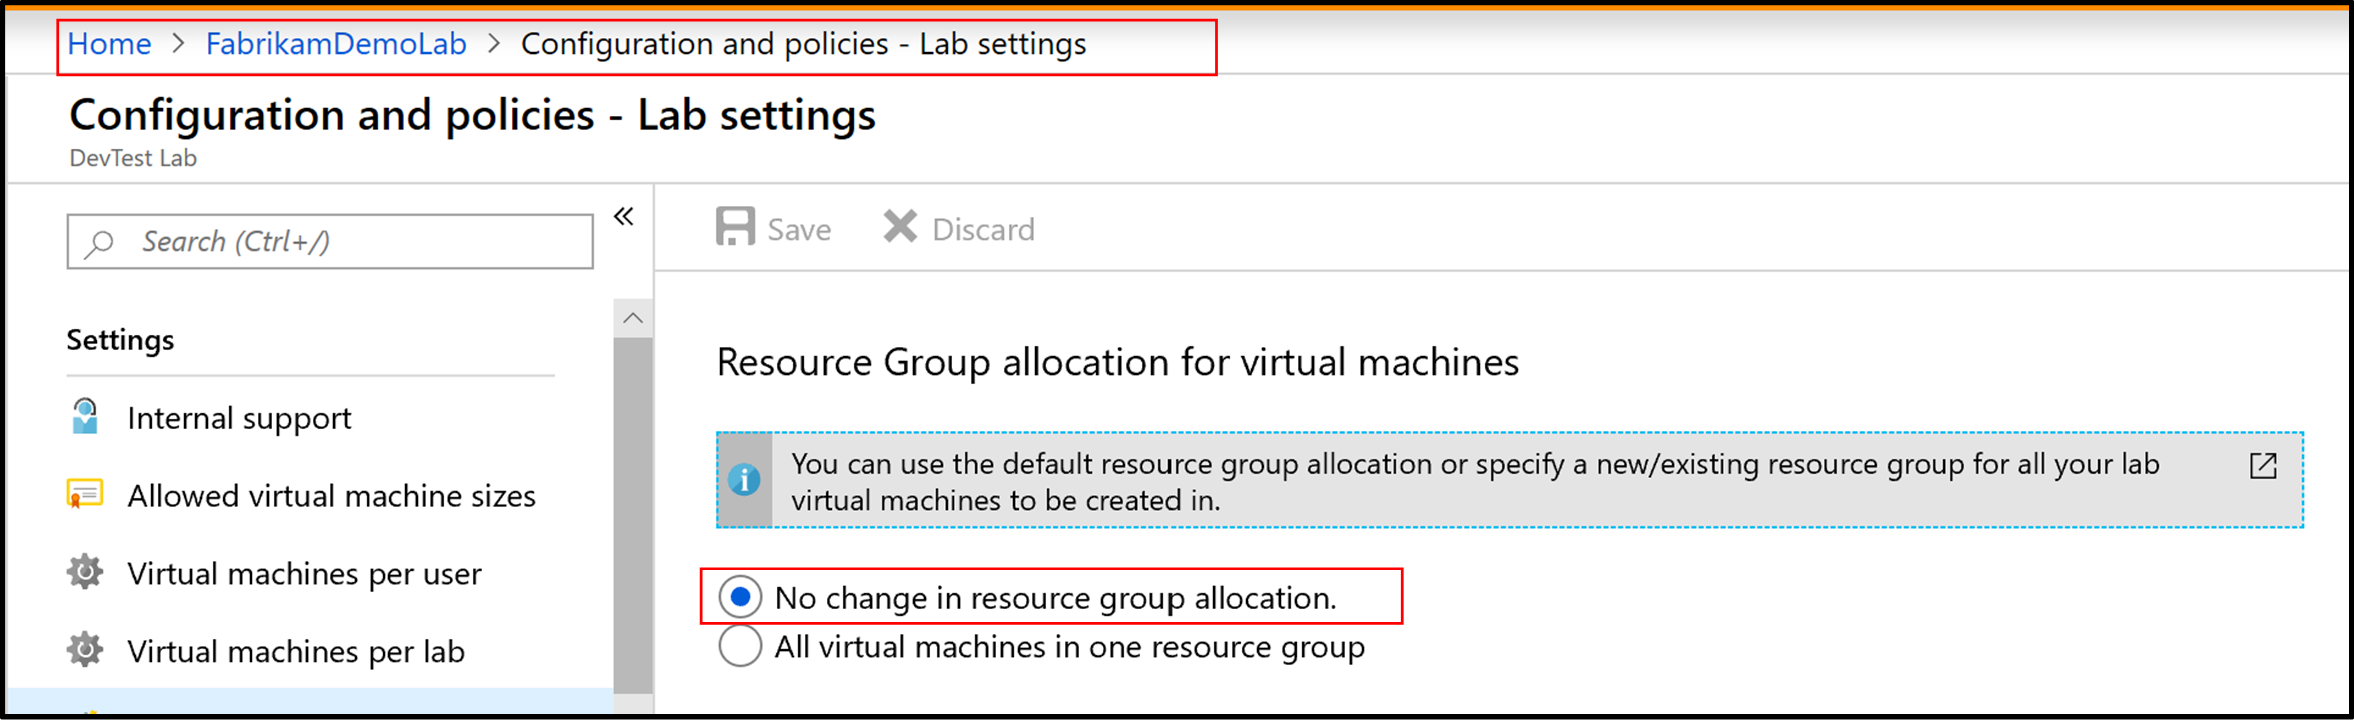 Screenshot of Resource Group allocation for virtual machines